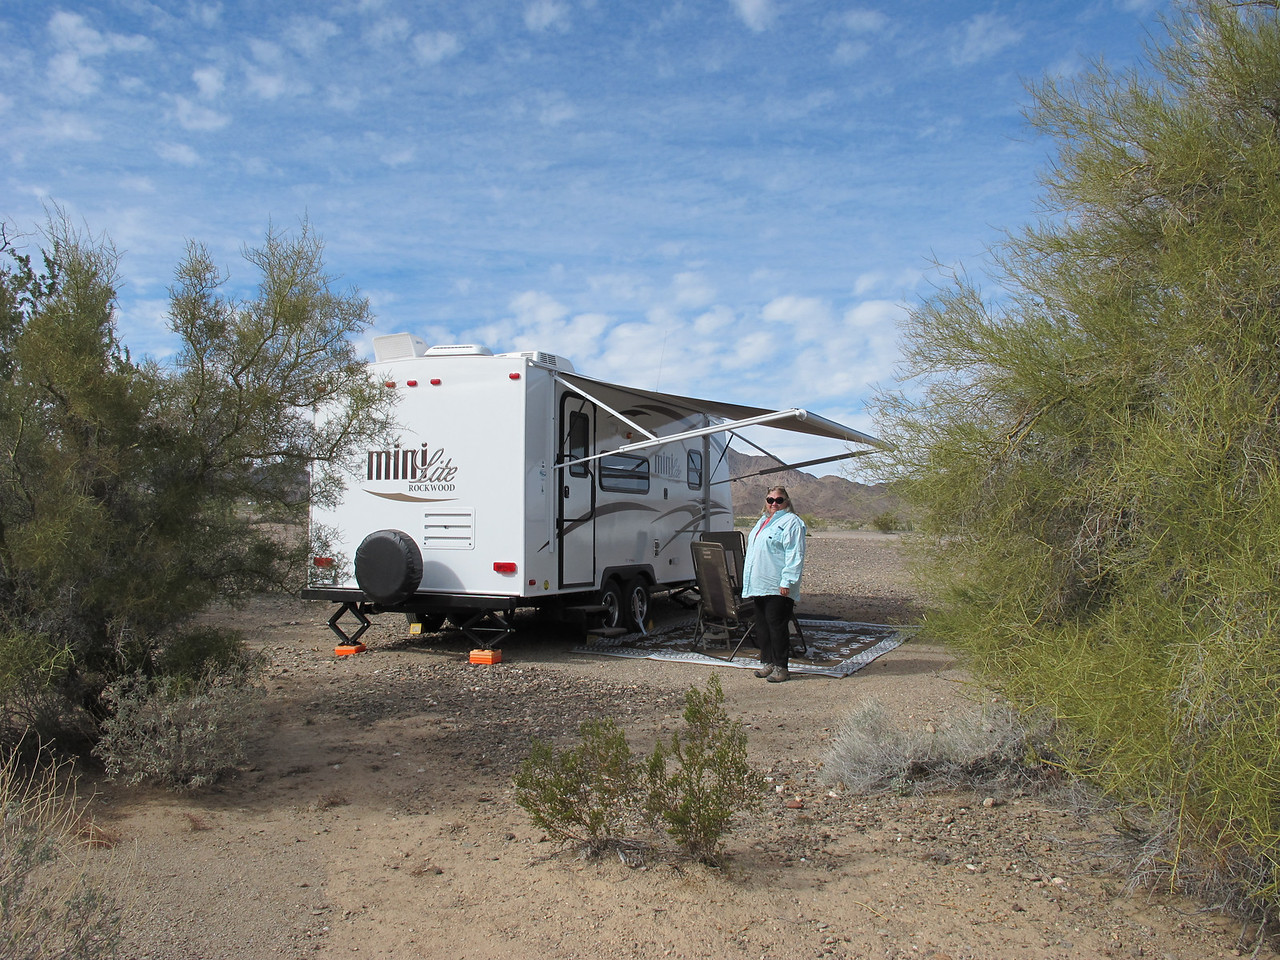 Casita owner, GrandJan, now travels in a Rockwood Mini Lite so she has more room when camping with her grandkids. Her Casita is back home in Louisiana.